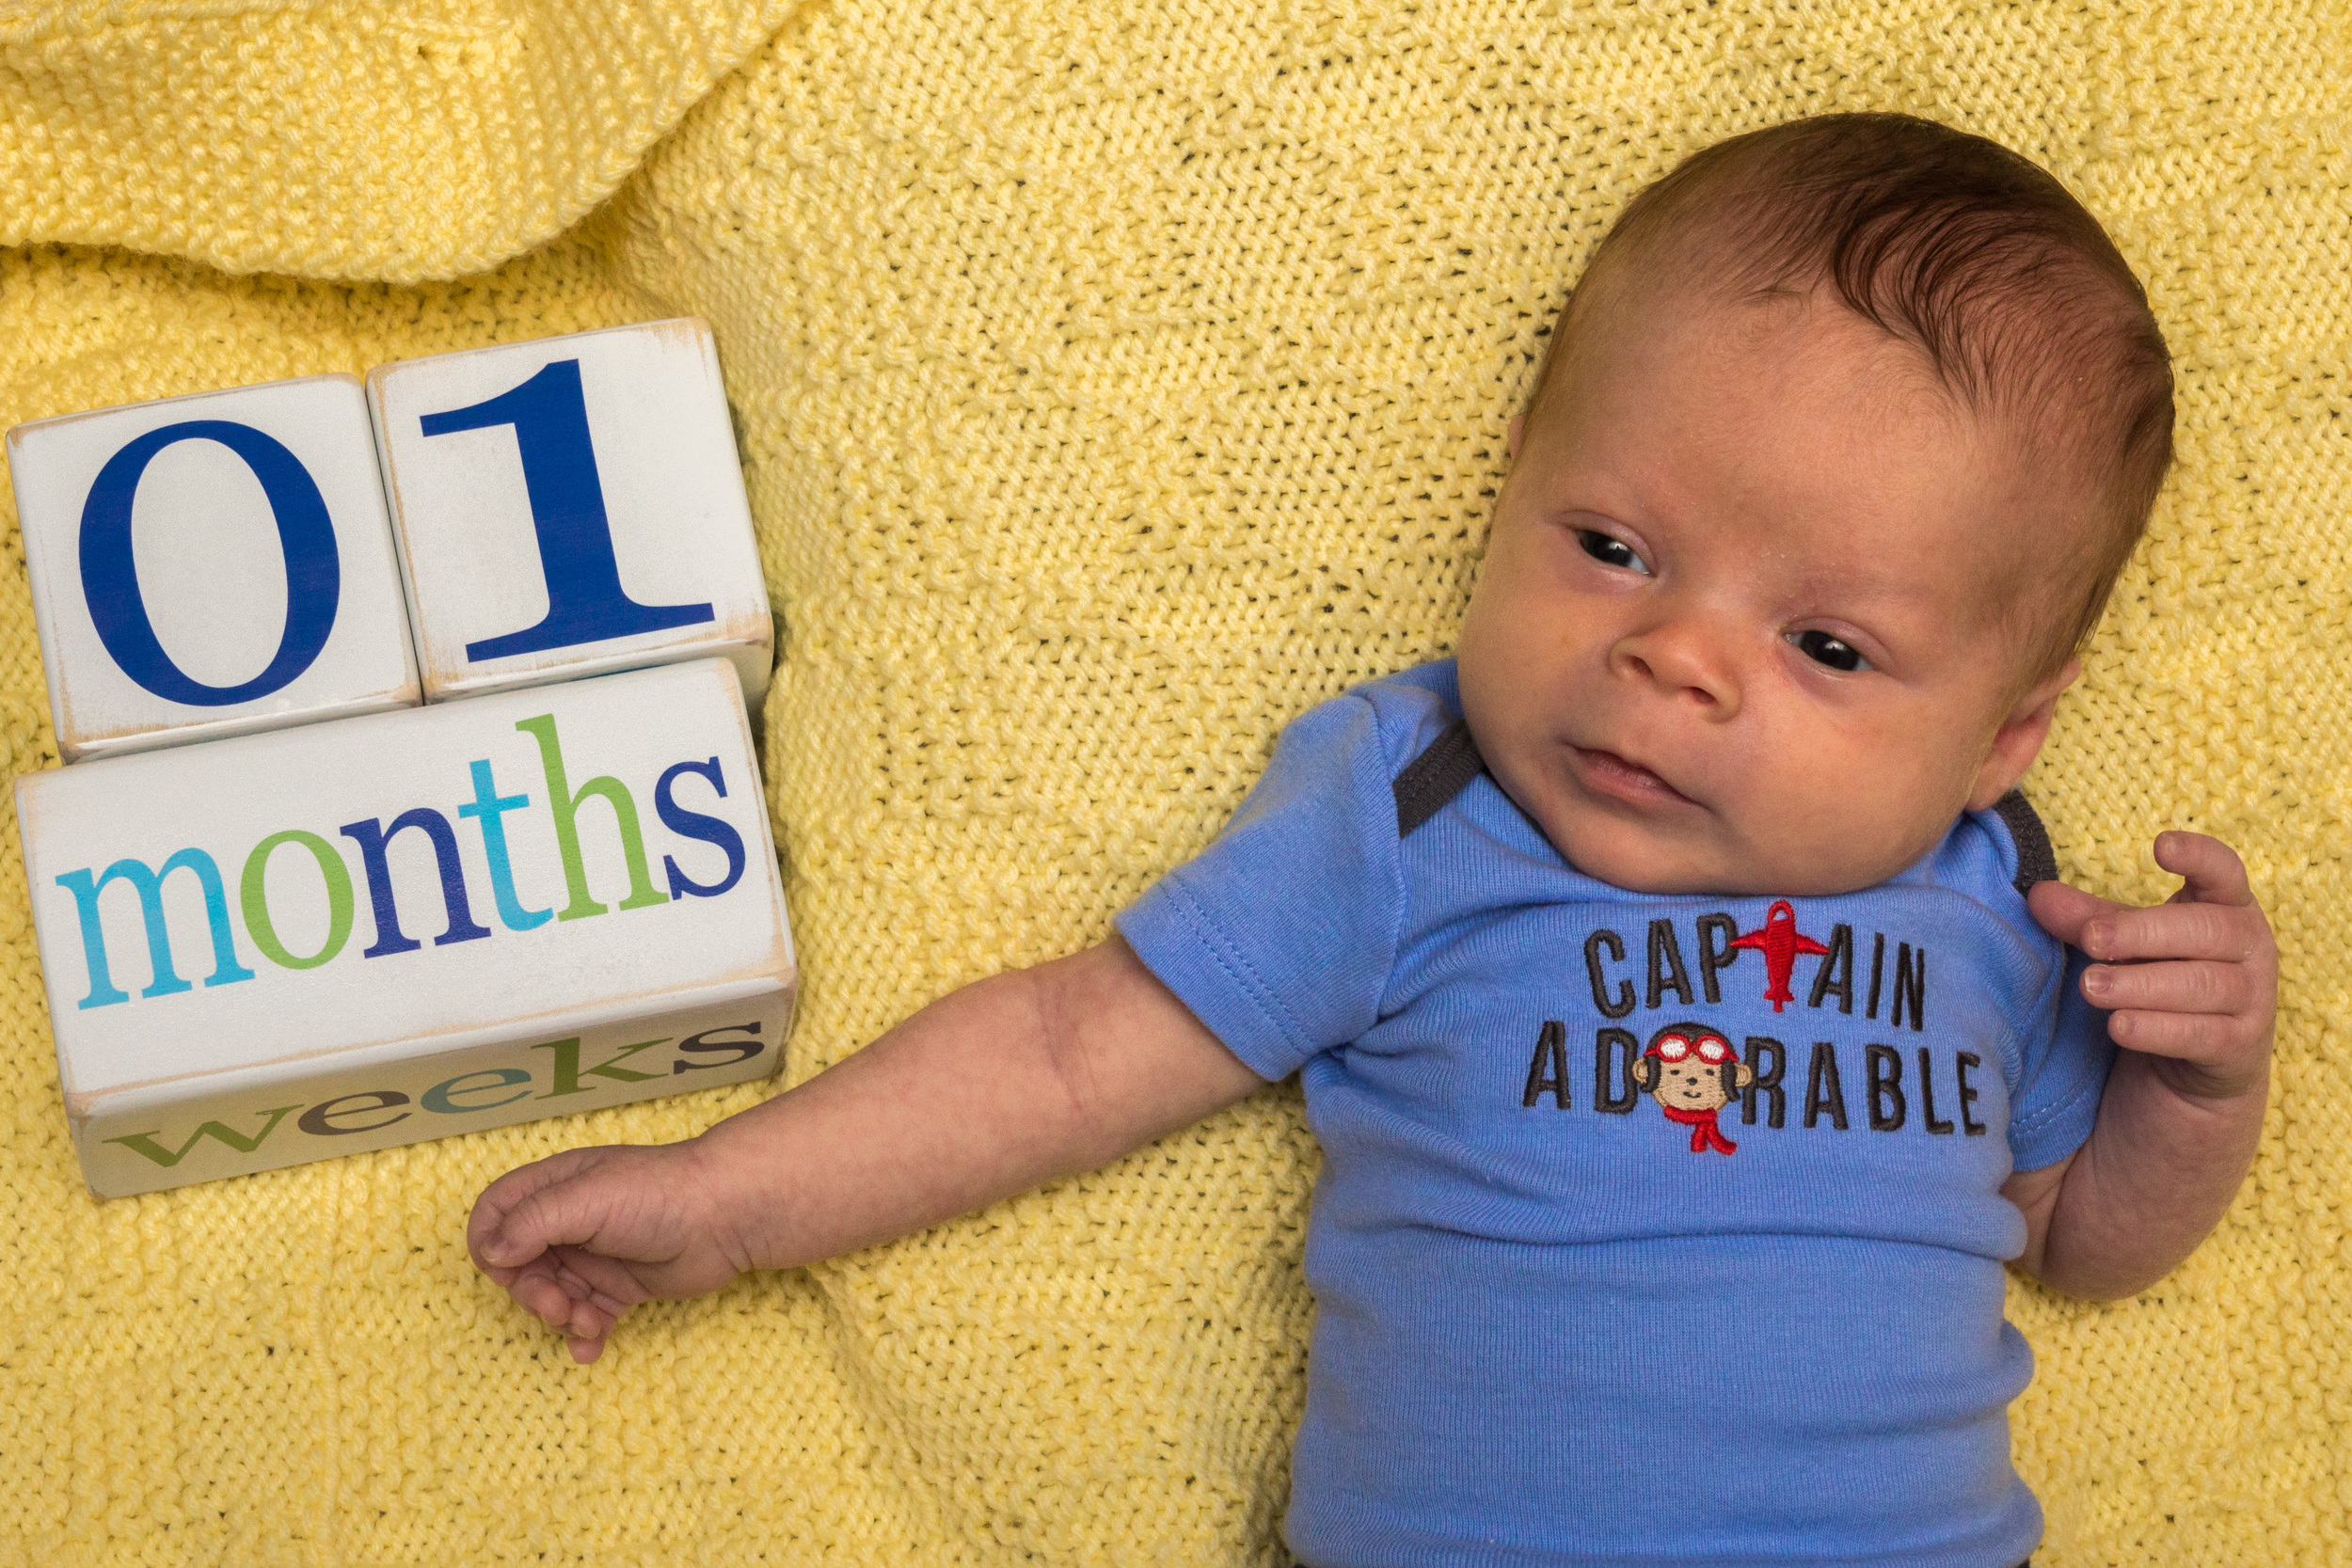 One month old. He truly is Captain Adorable.